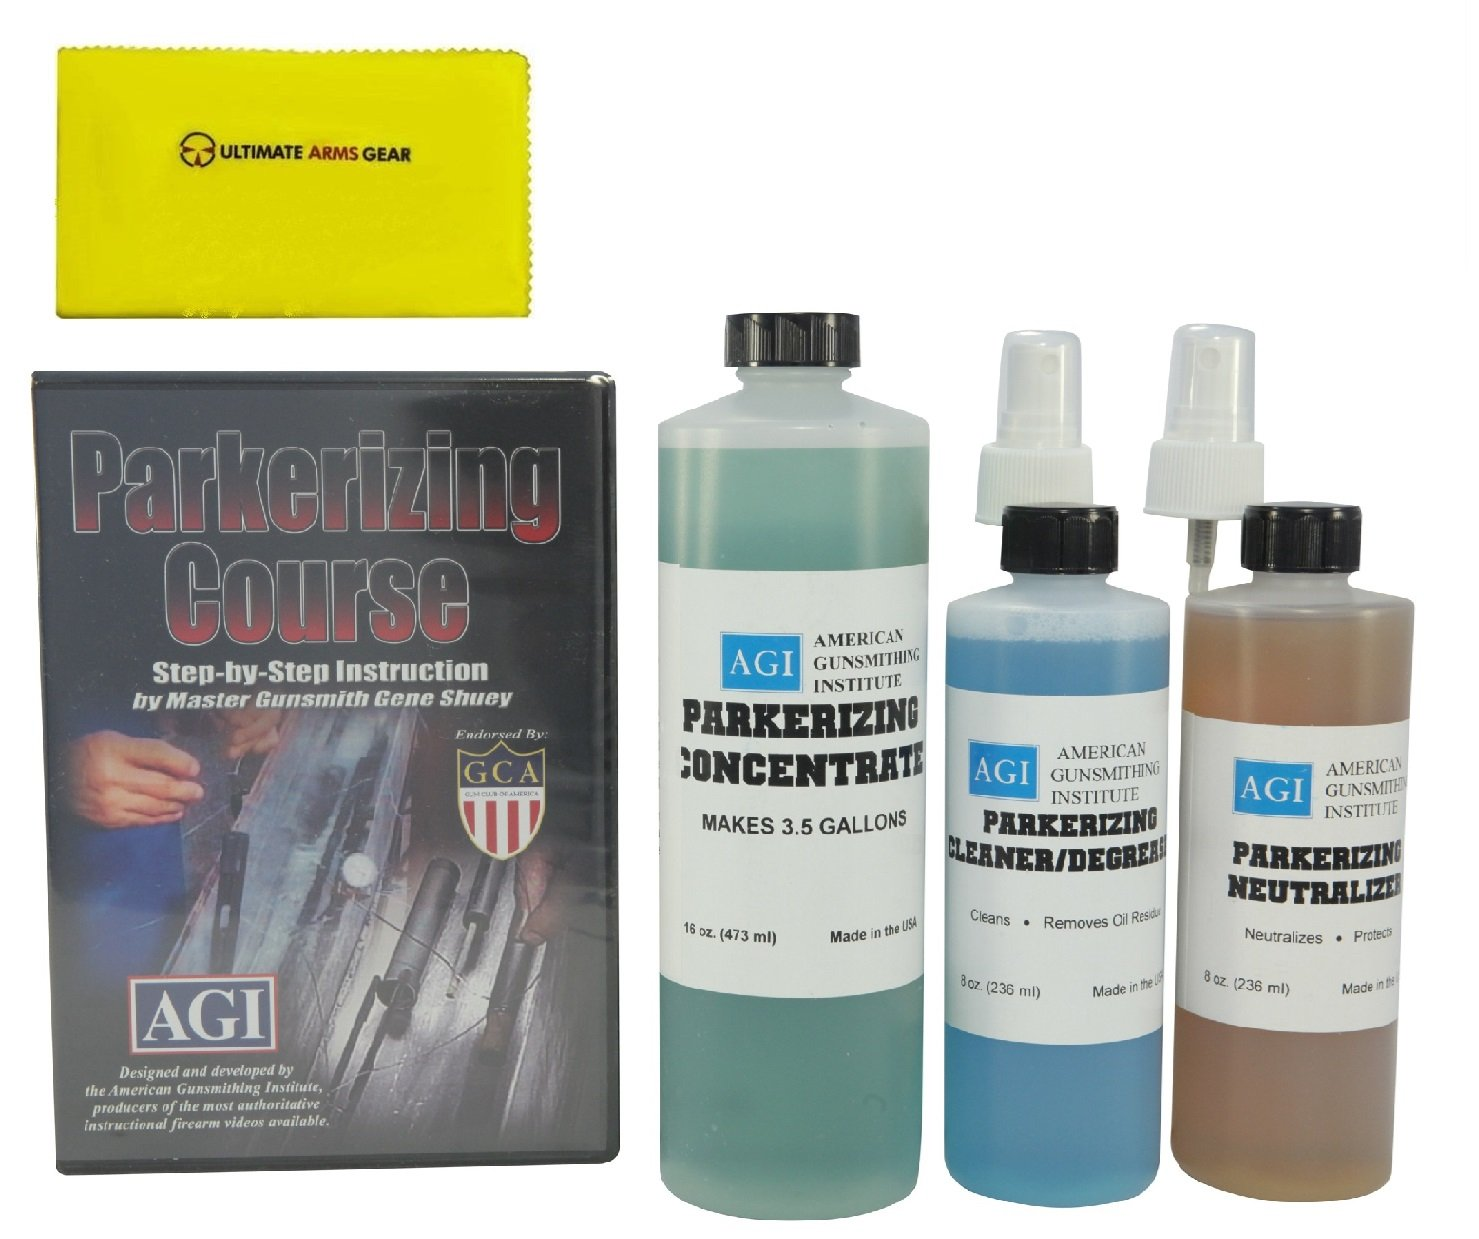 Amazon American Gunsmithing Institute Parkerizing Kit With Concentrate Cleaner Degreaser Neutralizer Step By DVD Ultimate Arms Gear Care